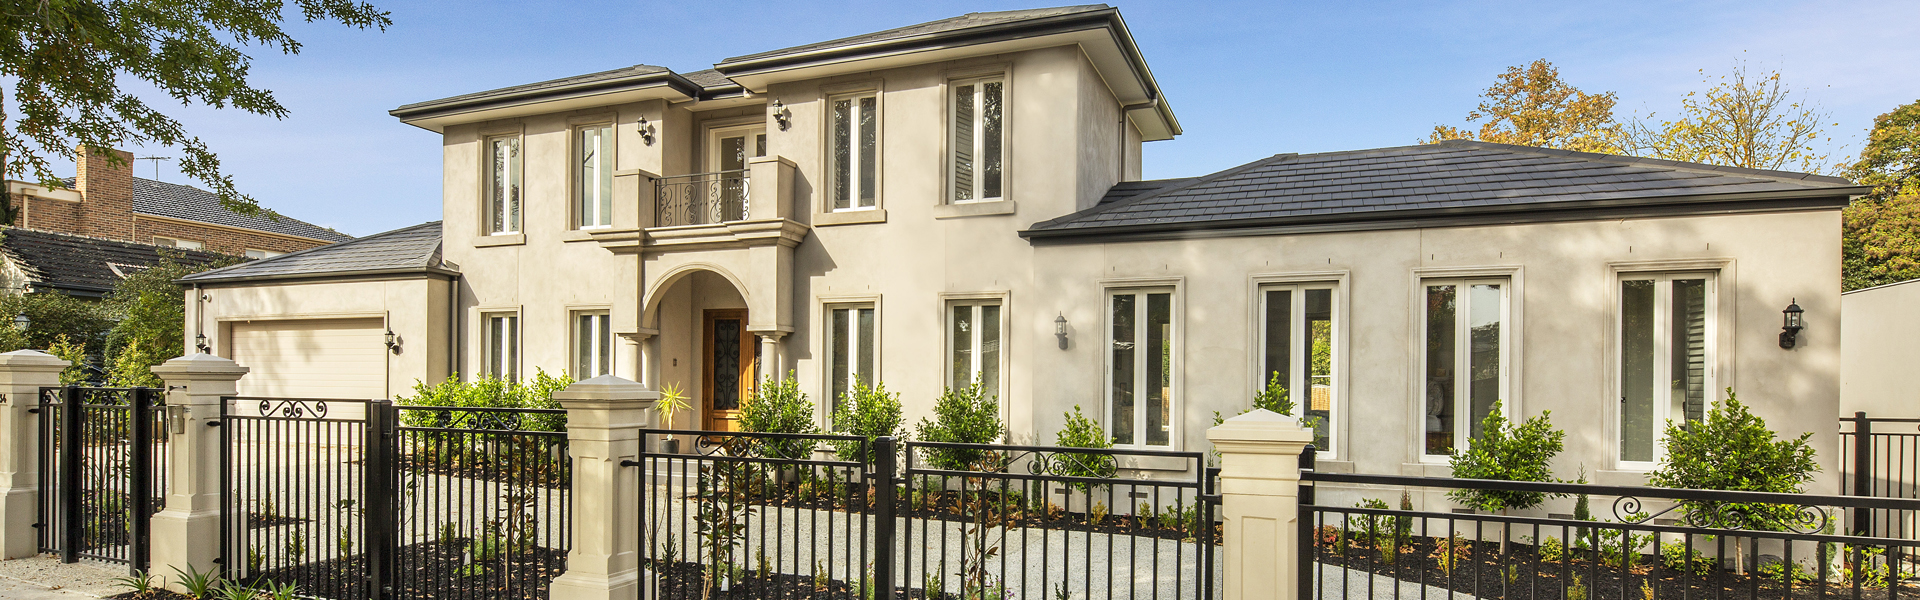 Build a lavish home equipped with all amenities by hiring home builders